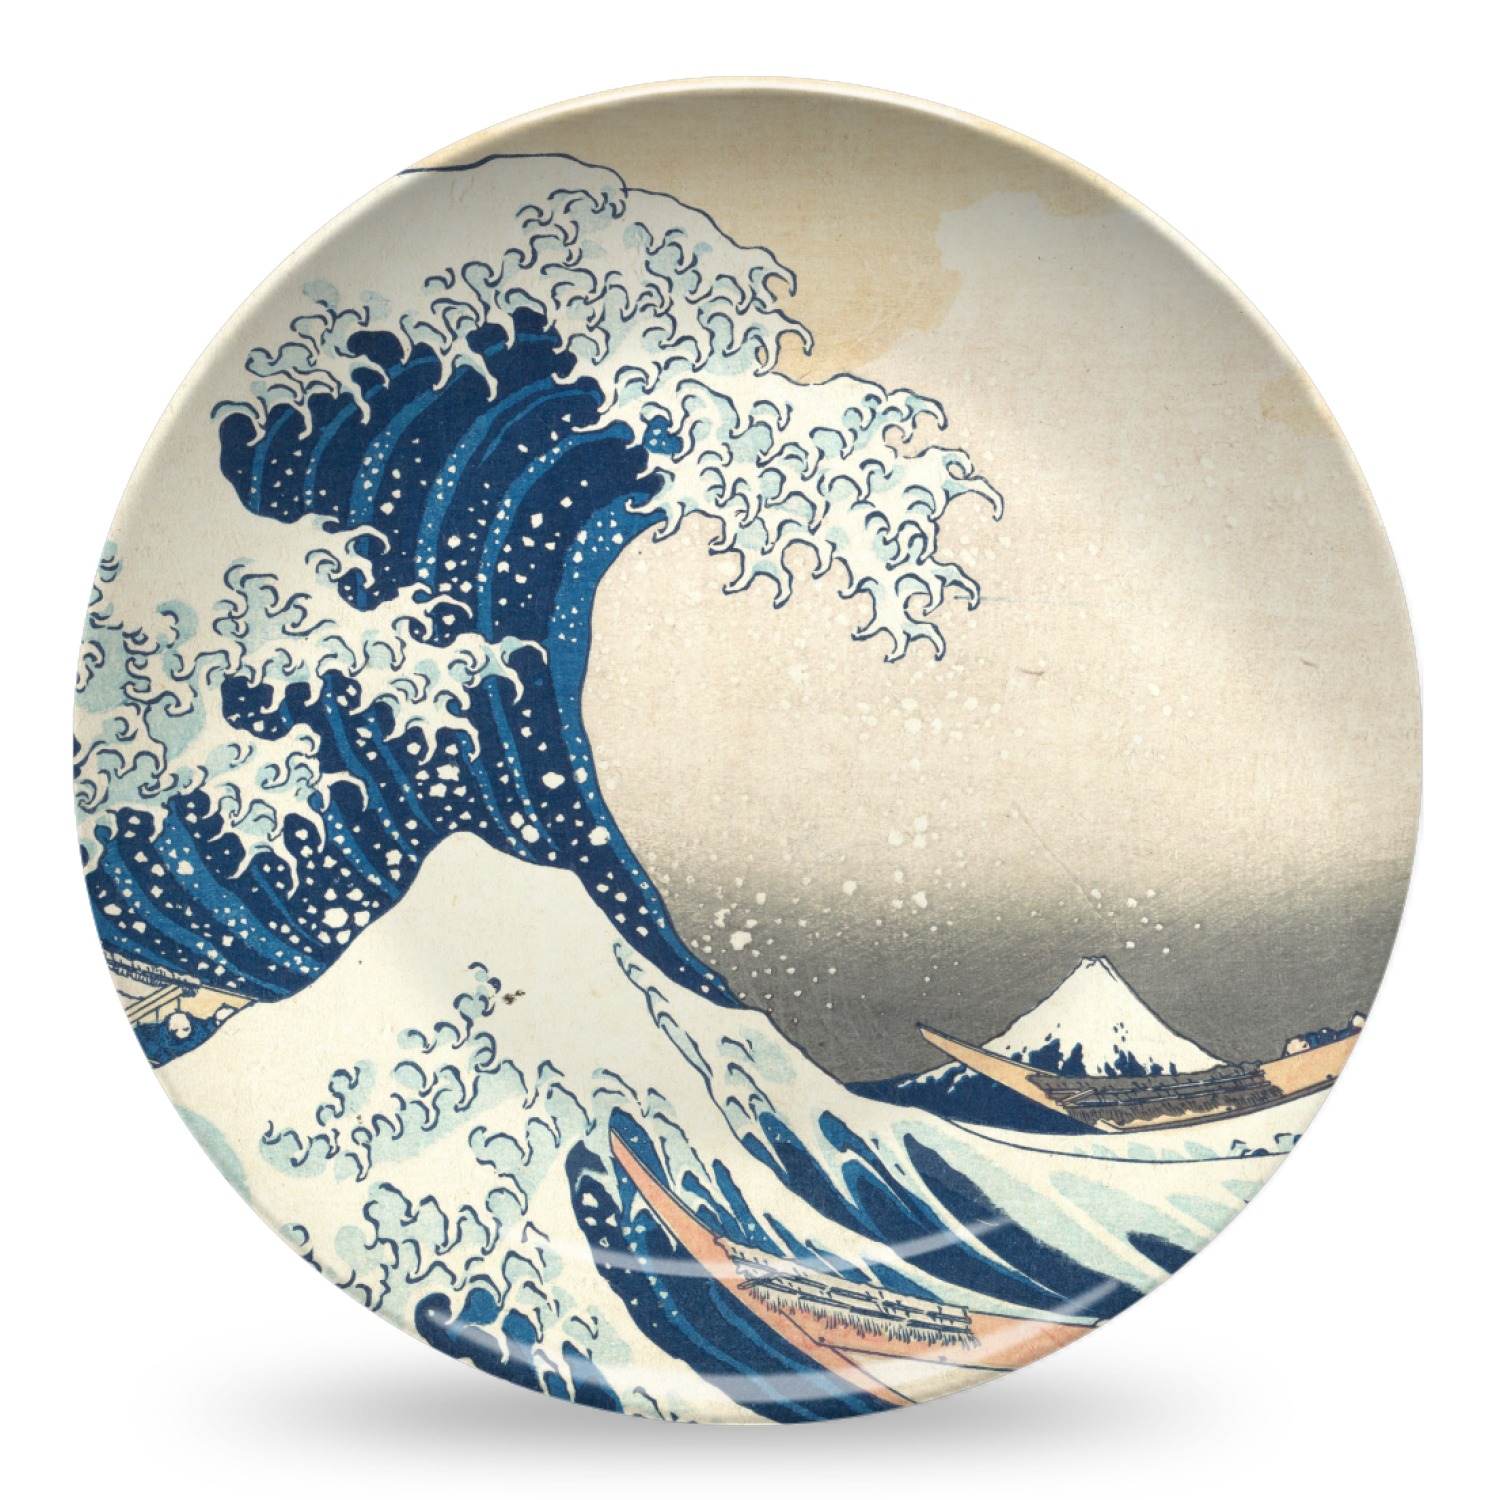 Great Wave of Kanagawa Microwave Safe Plastic Plate - Composite Polymer  sc 1 st  YouCustomizeIt & Great Wave of Kanagawa Microwave Safe Plastic Plate - Composite ...